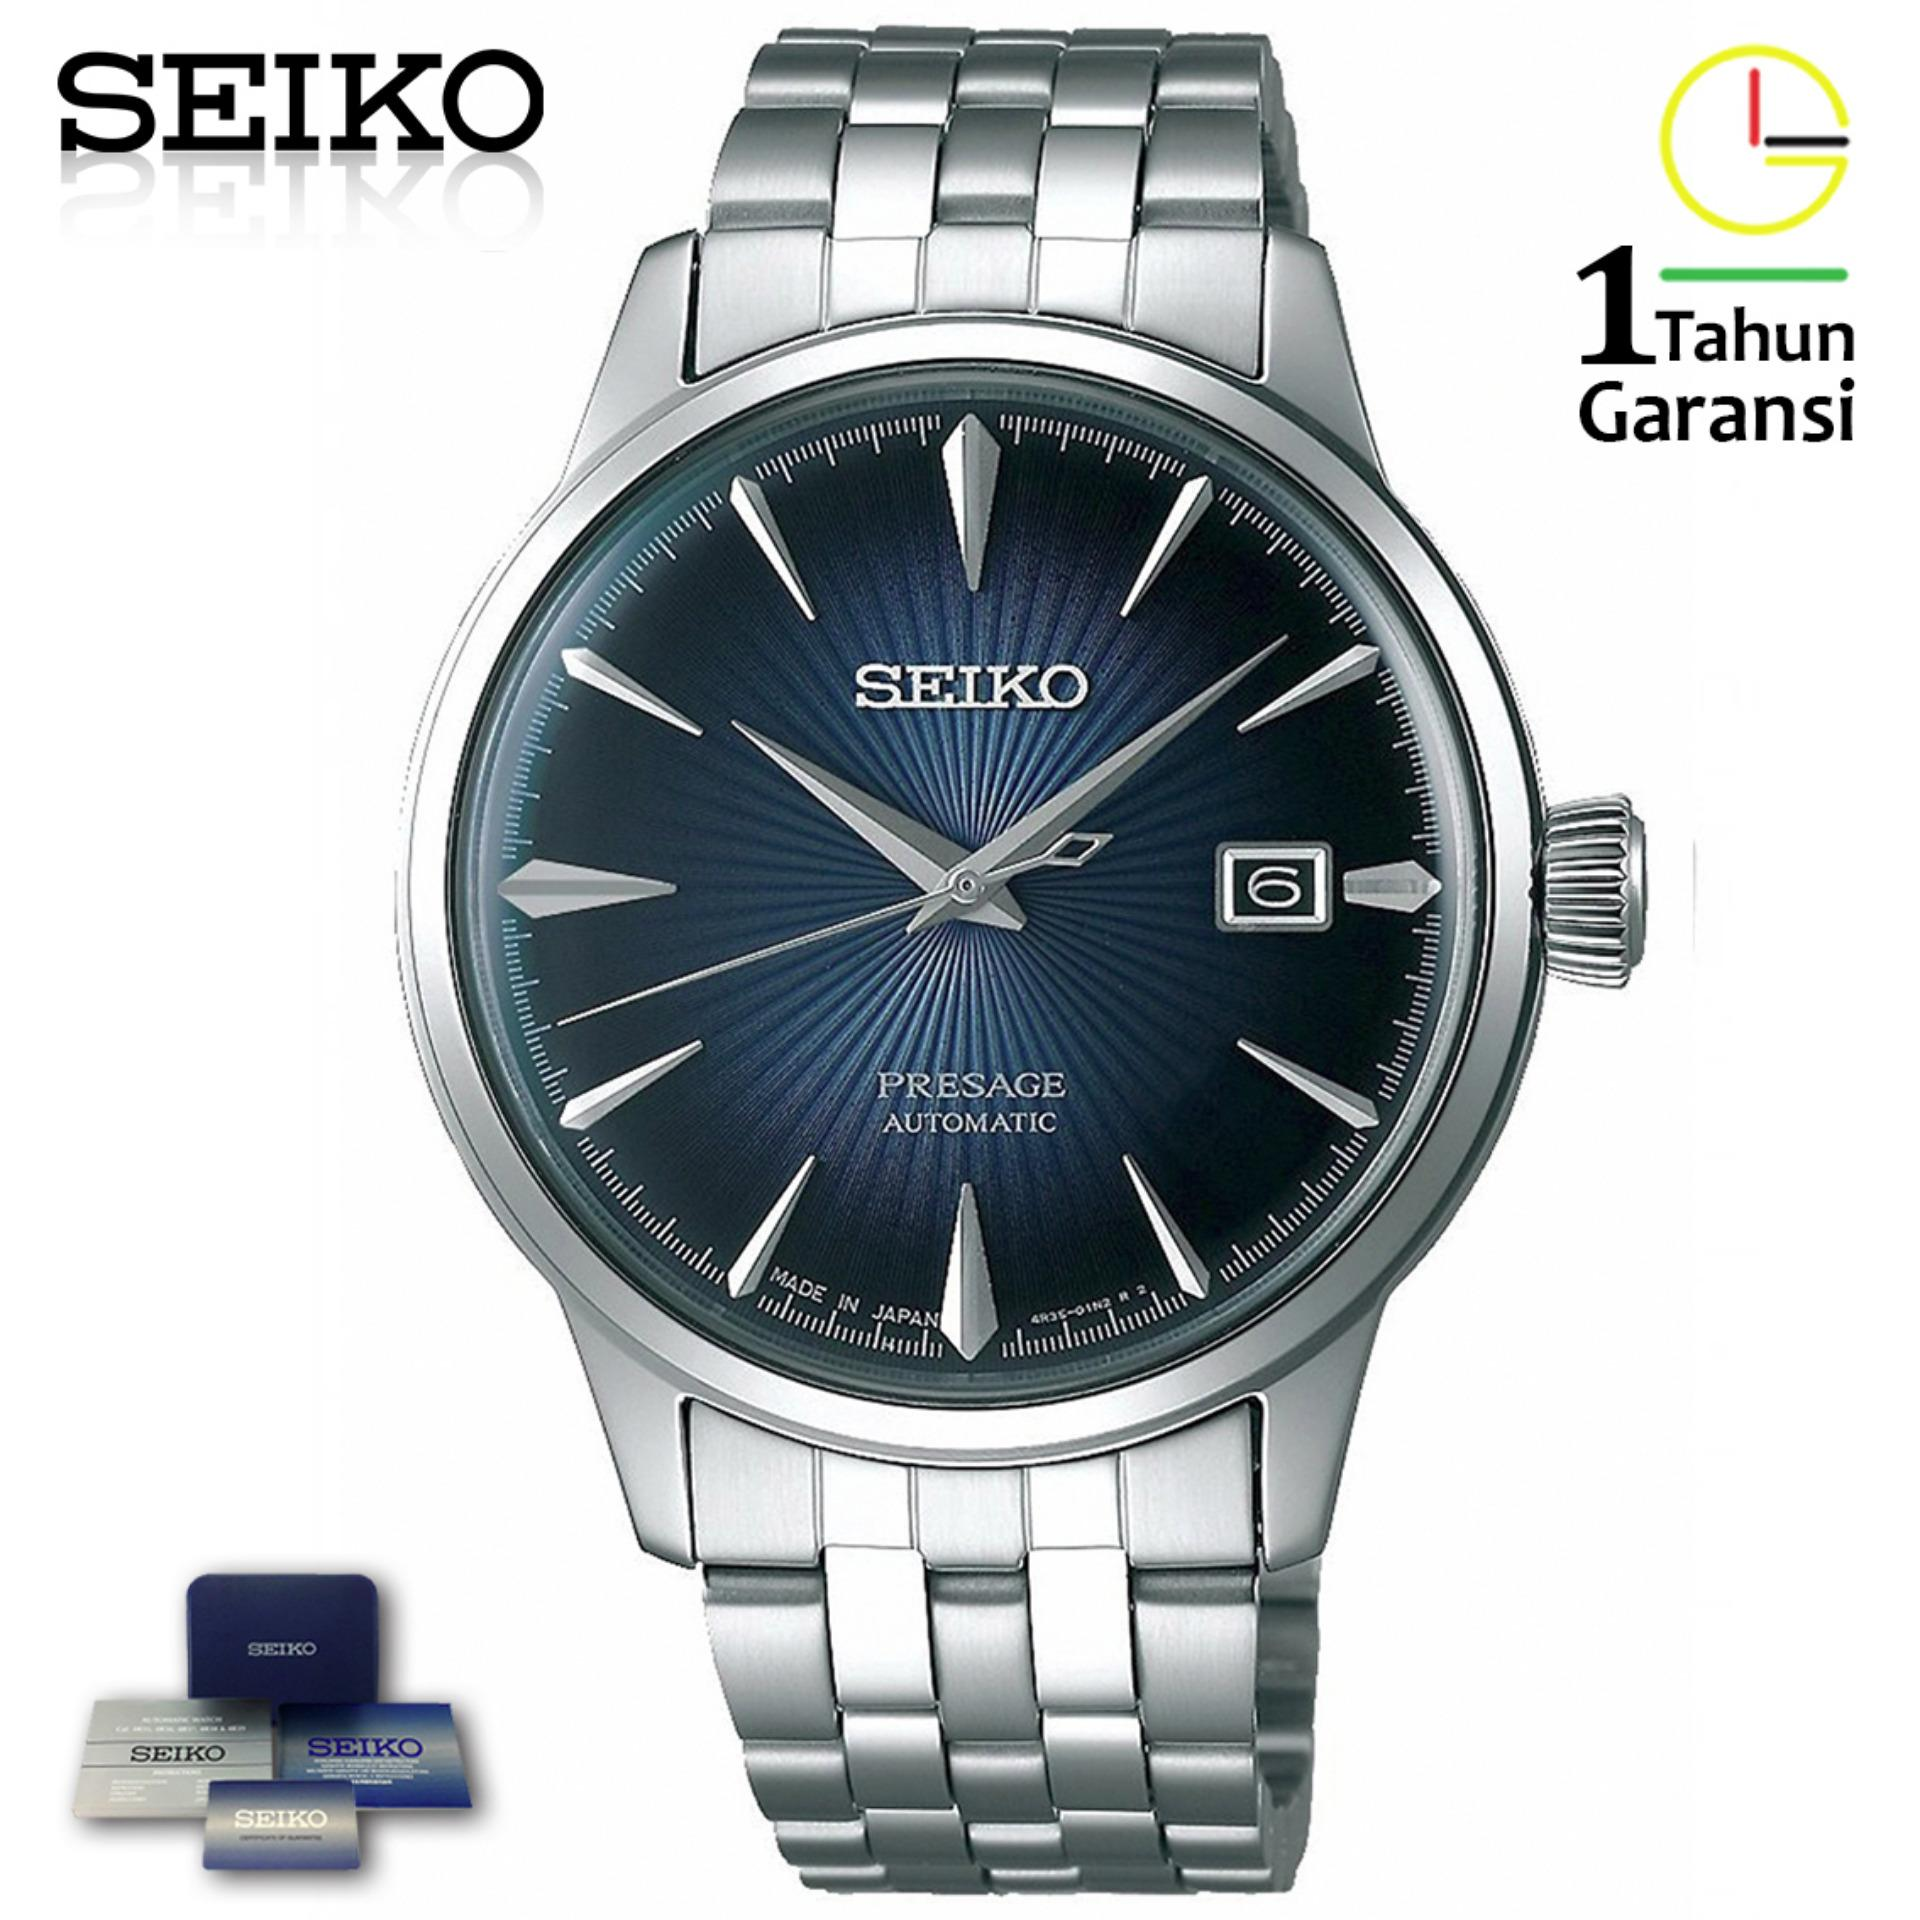 Kelebihan Seiko Presage Srp761j2 Automatic Black Leather Strap Jam Ssa303j1 Reserve Indicator Ssa303 Pria Ssa347j1 Bluemoon Cocktail Stainless Steel Silver